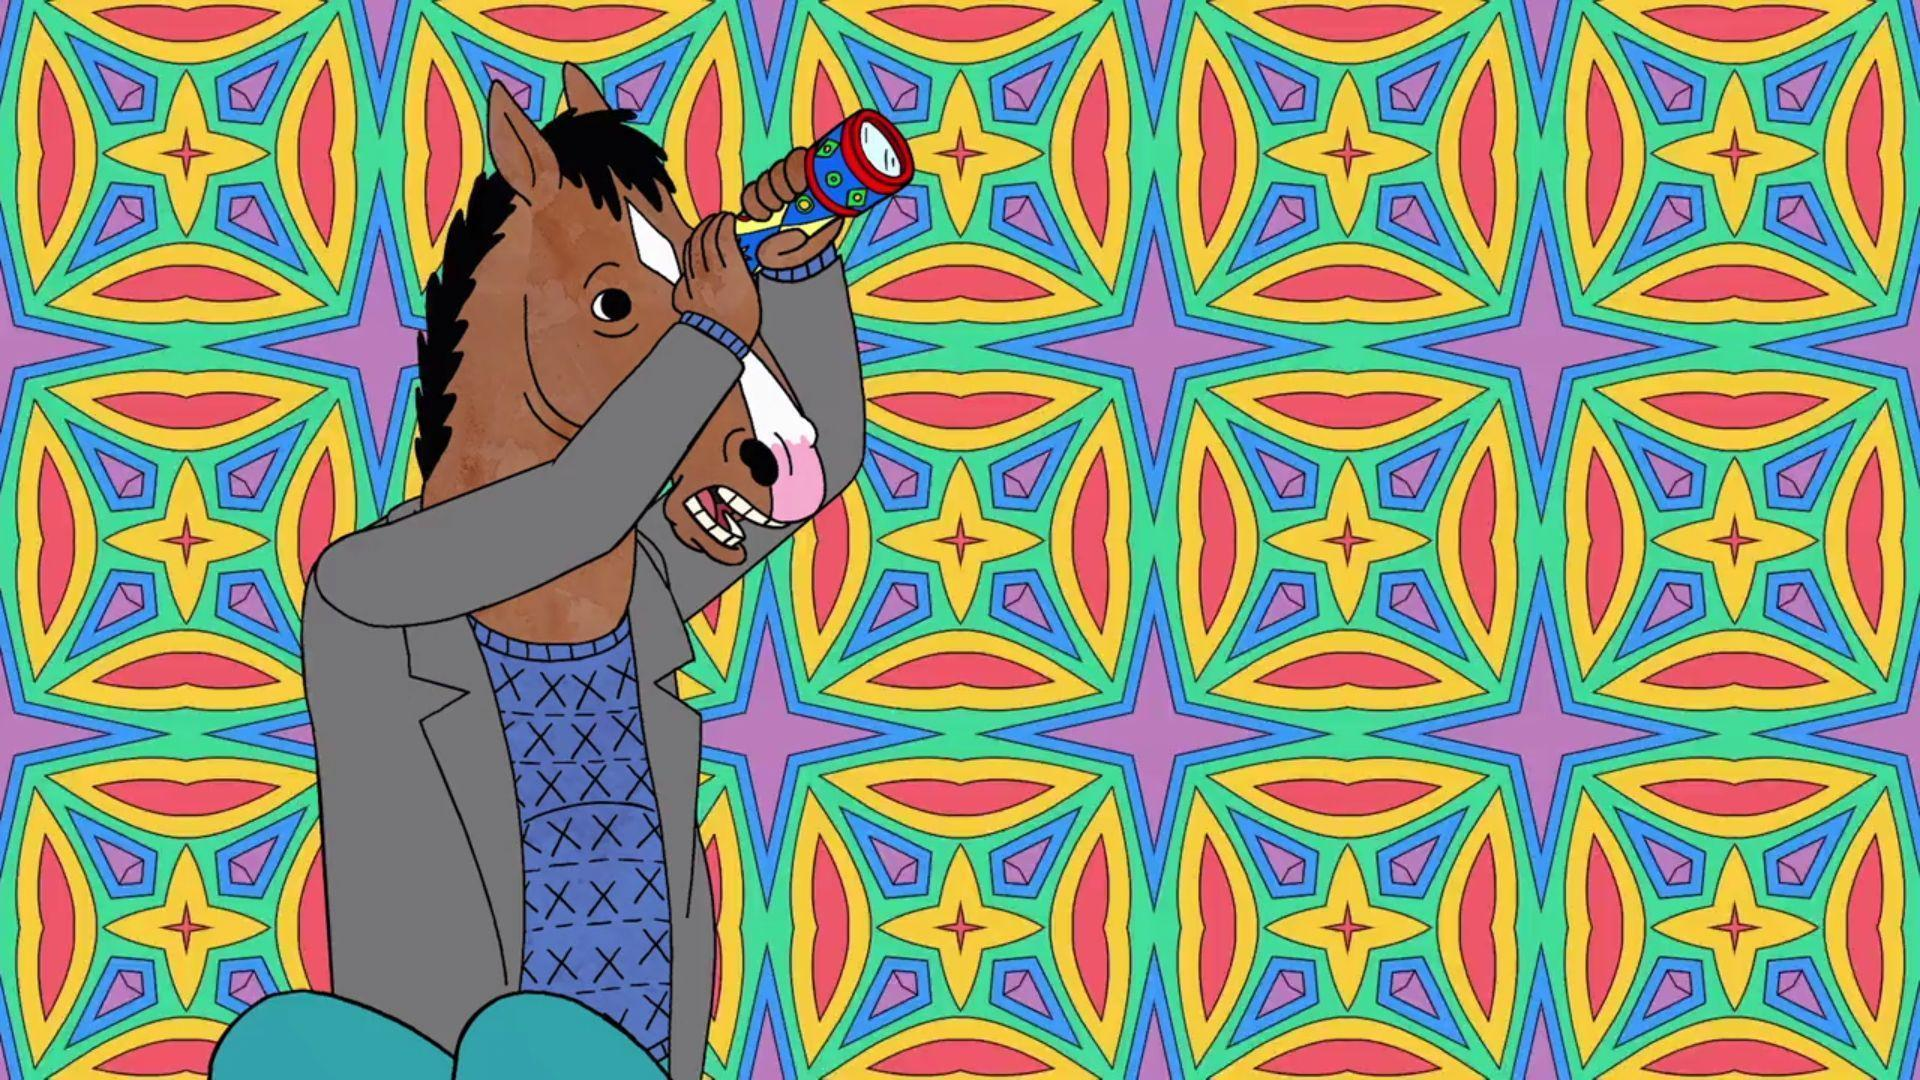 When Diane gives Bojack a kaleidoscope to entertain him while